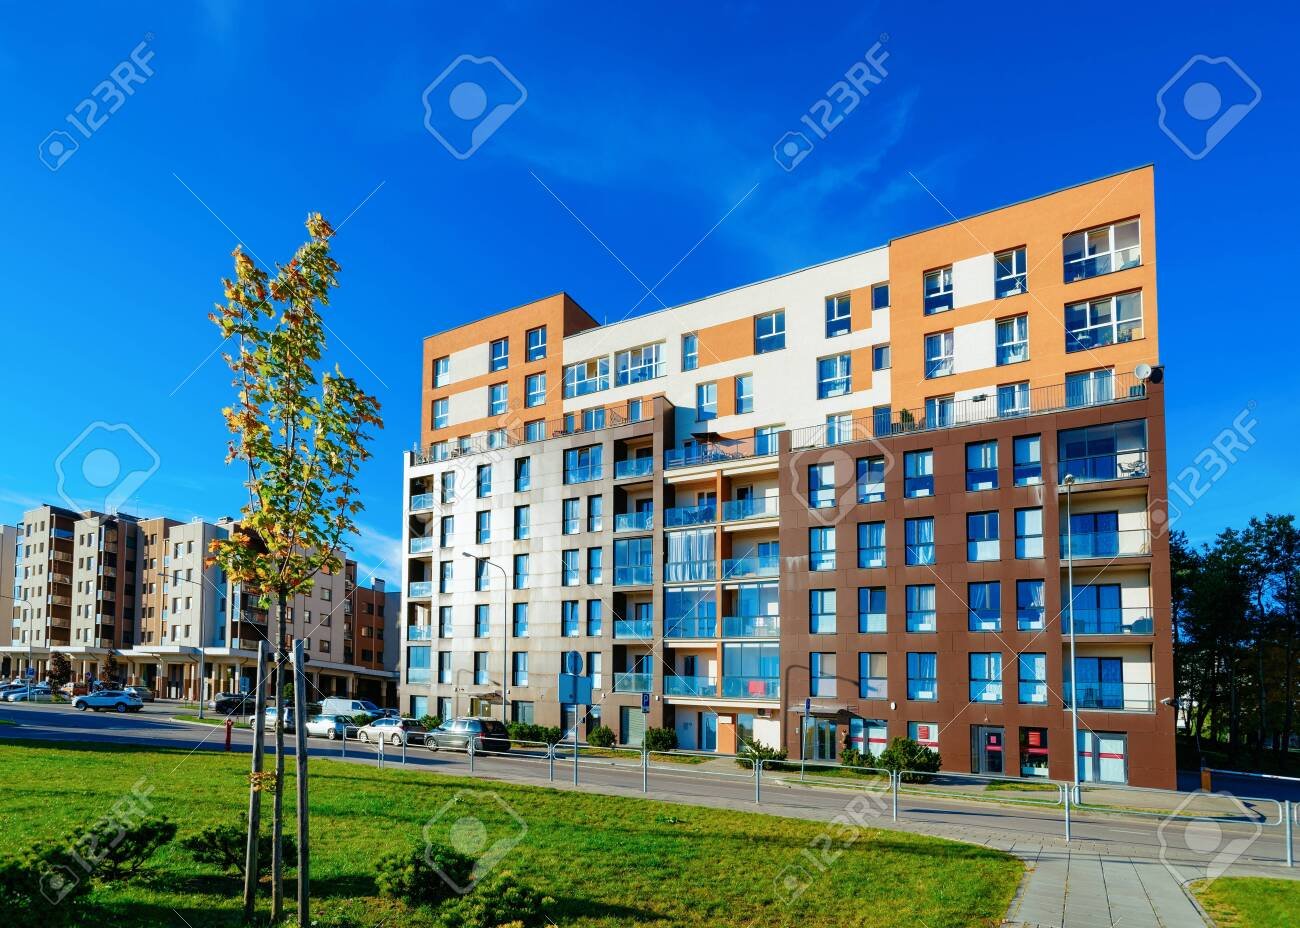 Apartment house residential building and cars parked in street - 134404480